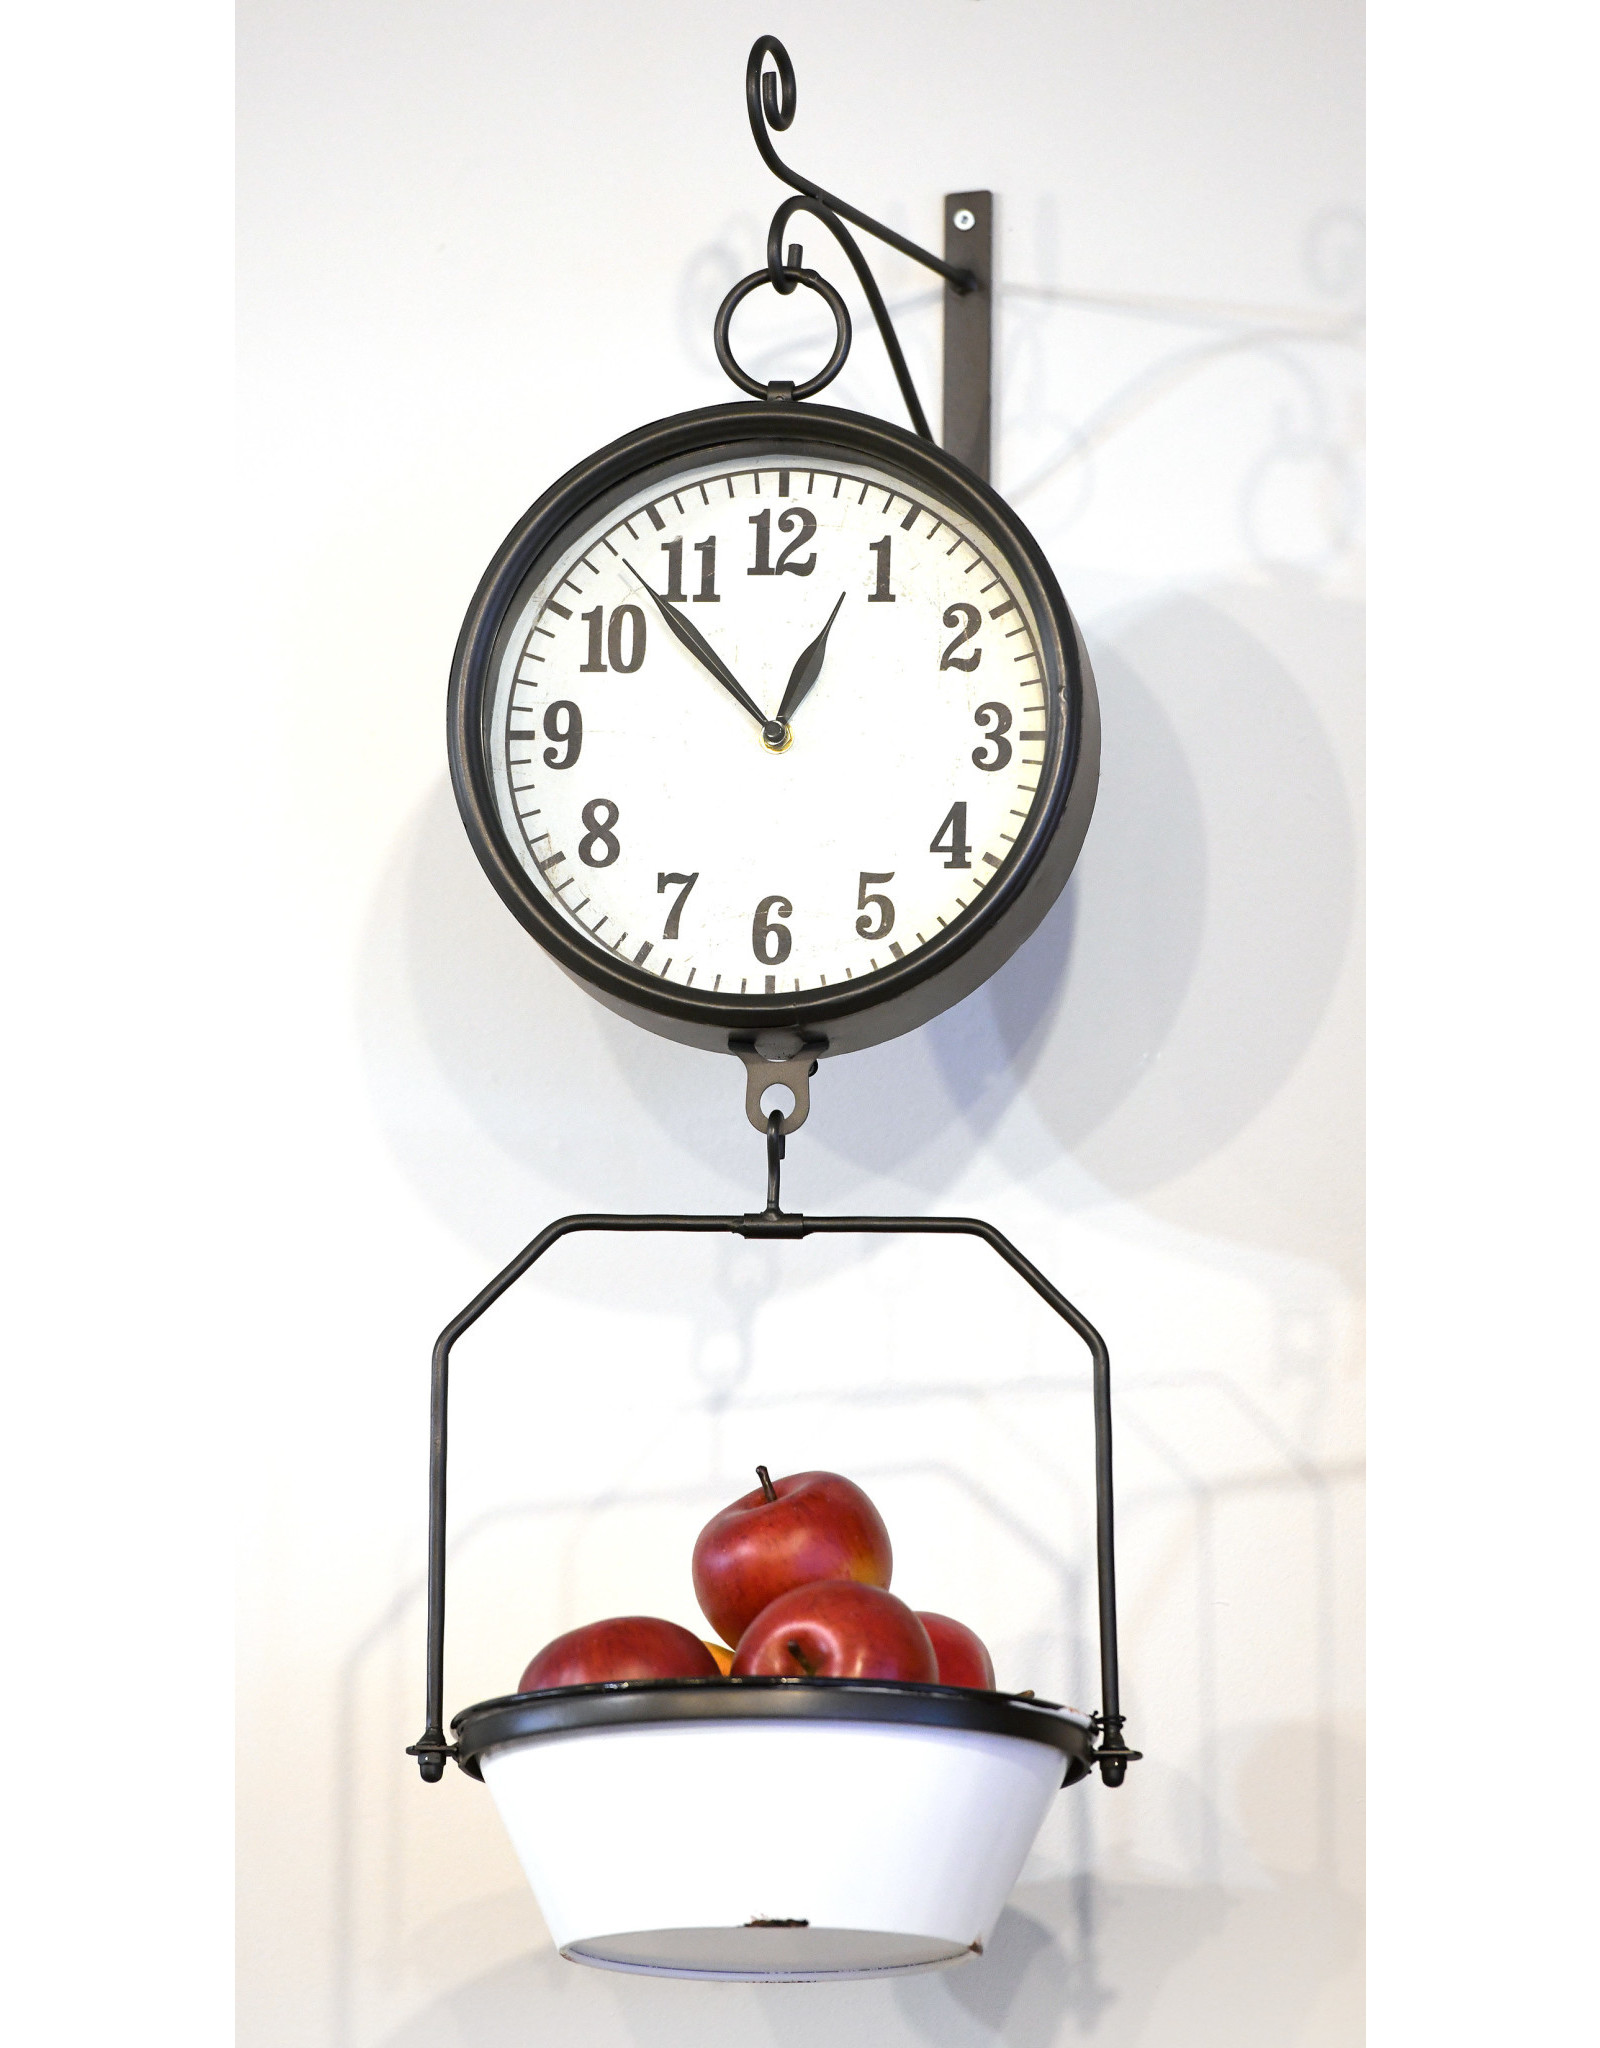 Hangng Clock with Decorative Scale